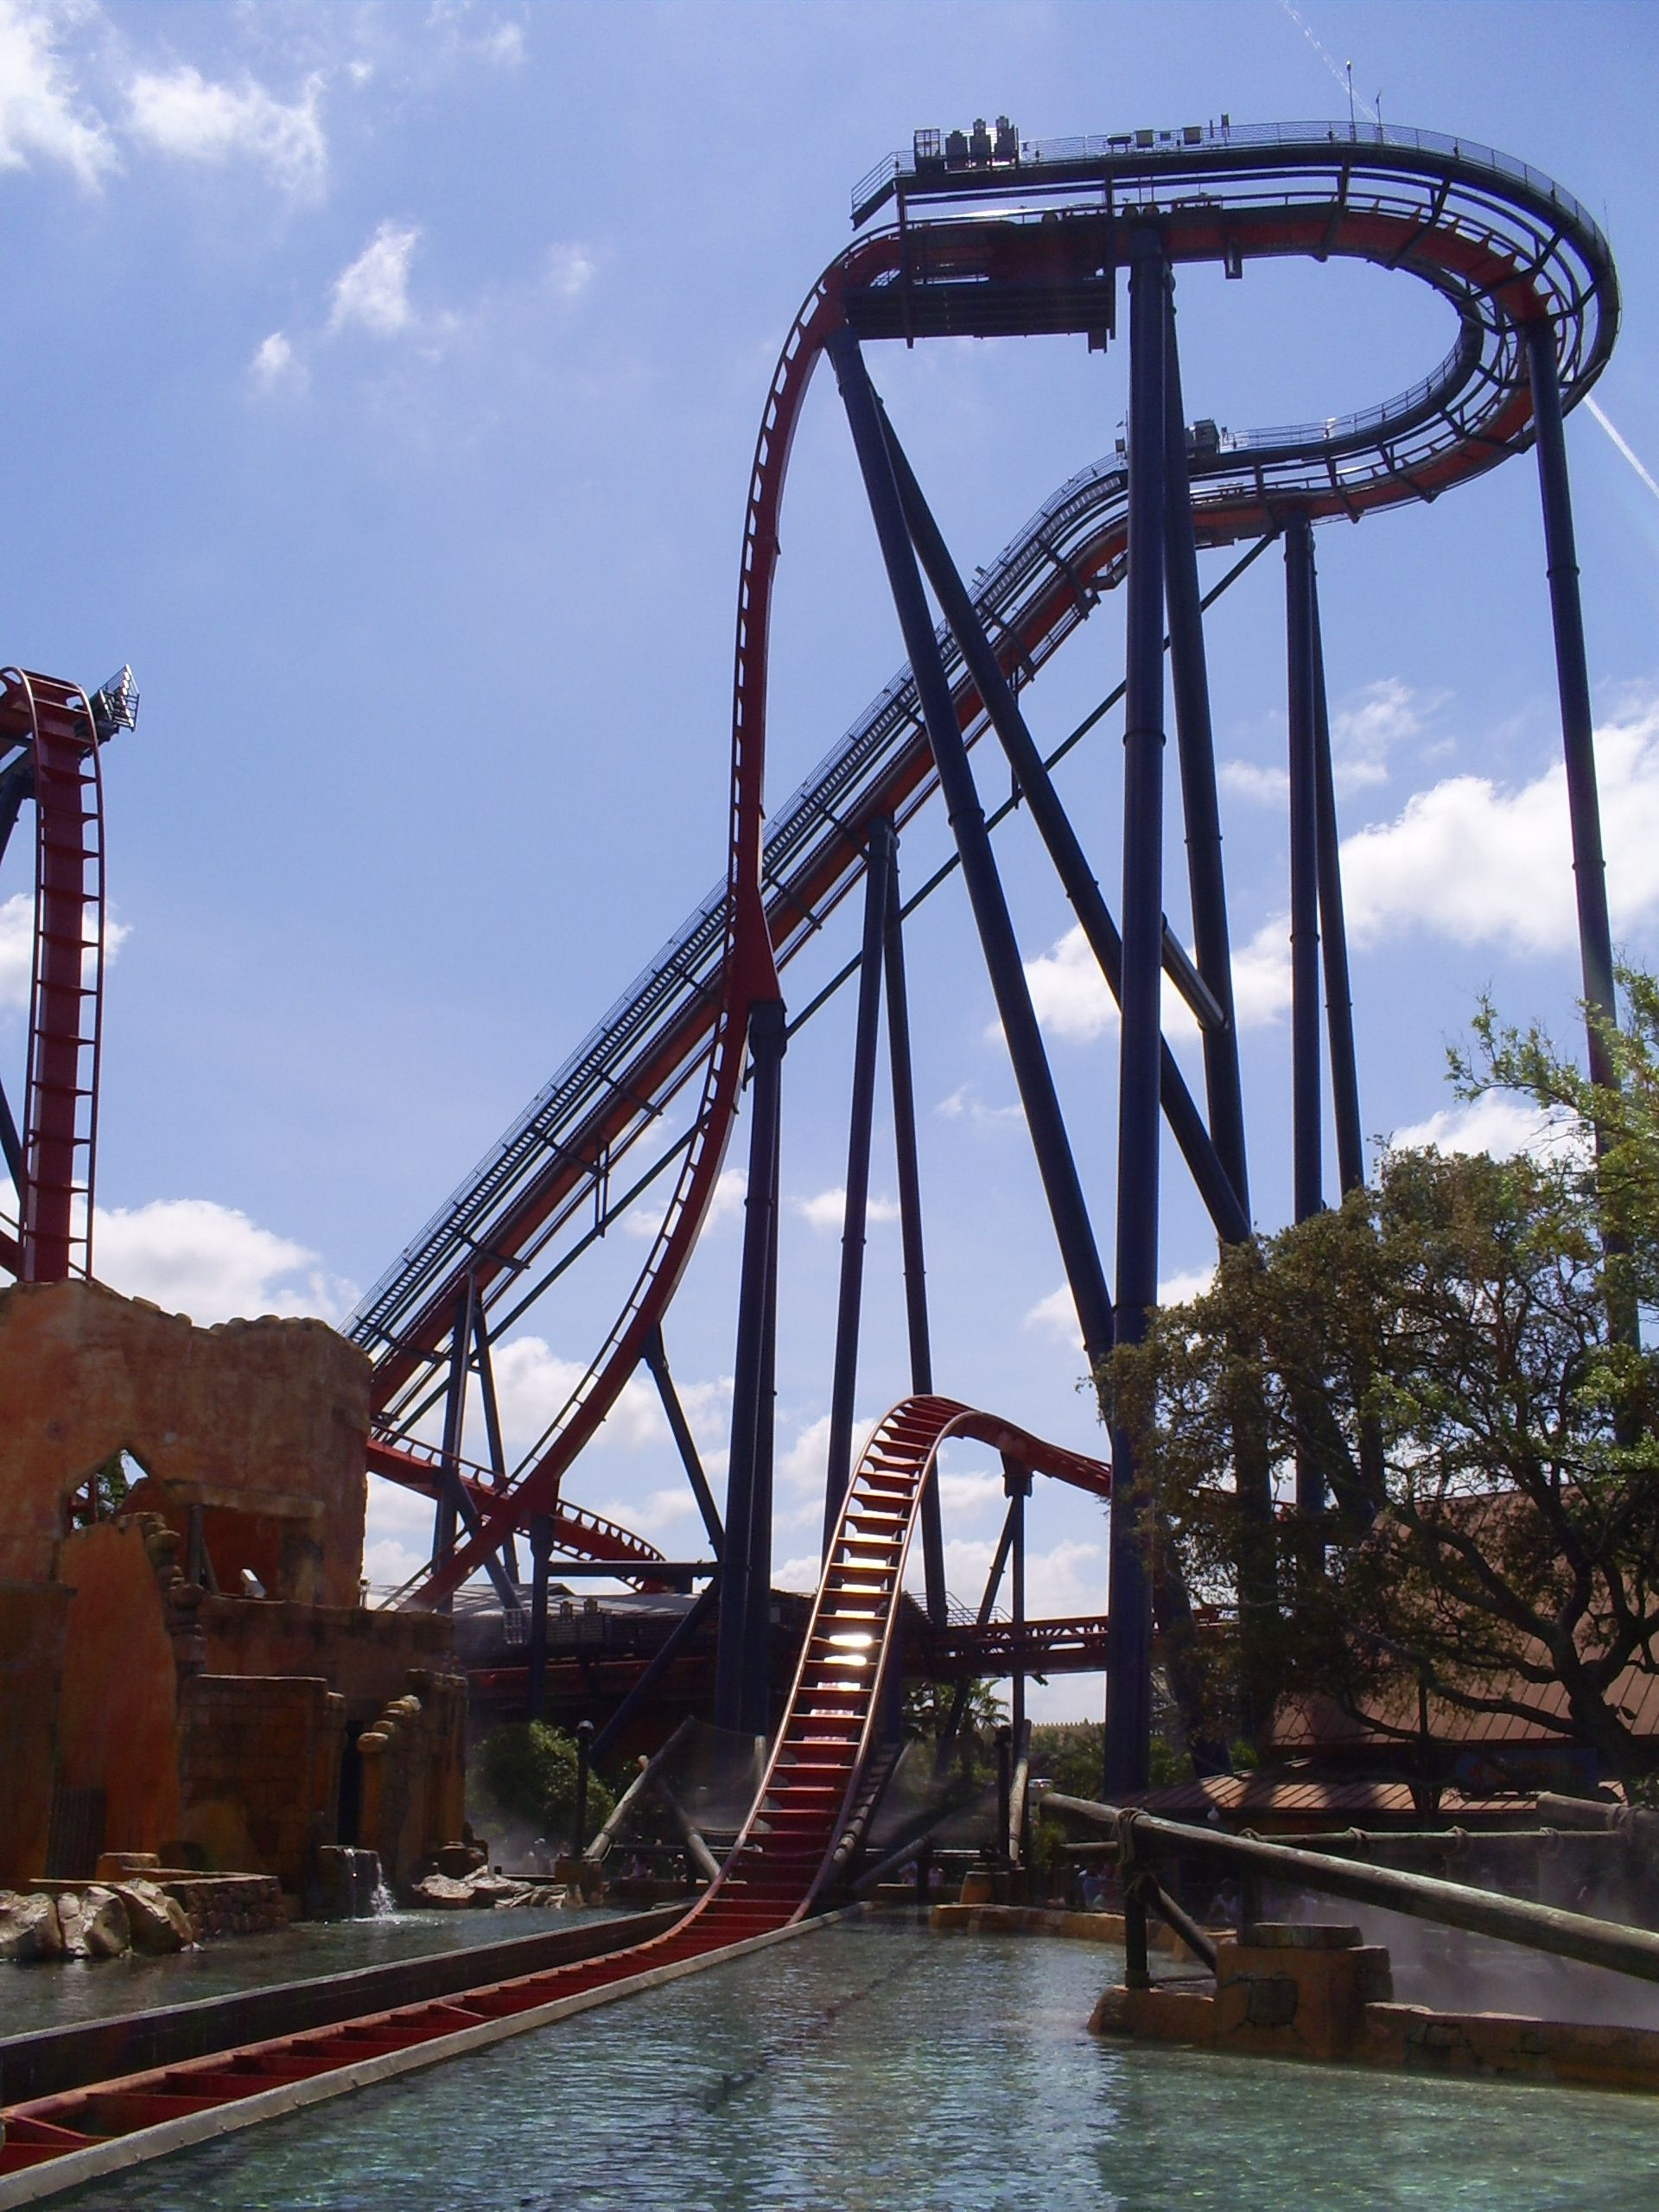 92f9bc6cd76d5cf24edf905d667acdd8 - List Of Busch Gardens Roller Coasters Tampa